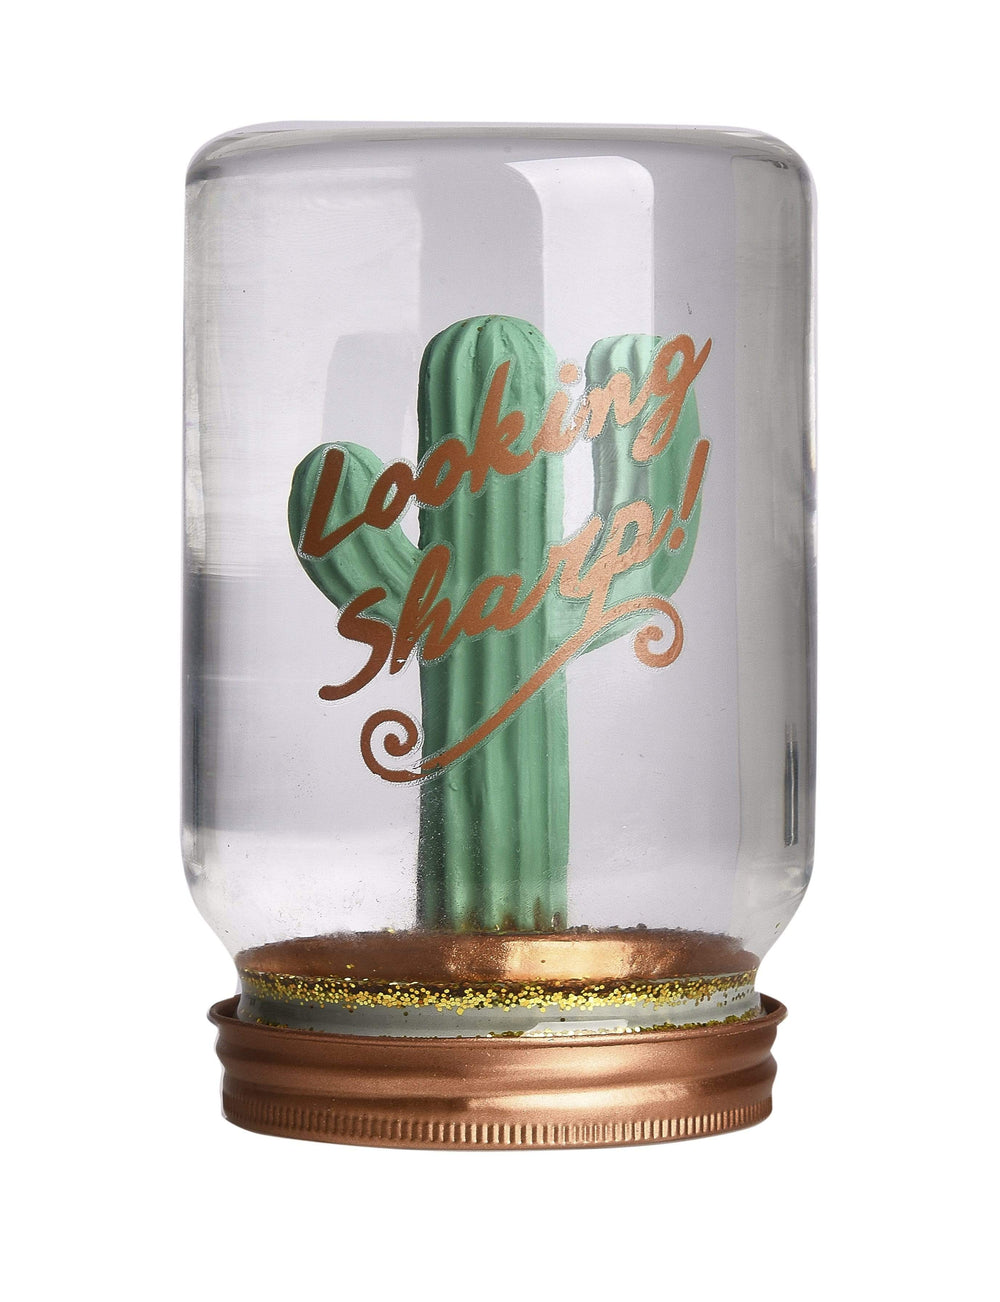 Pusher Store JAR SNOWGLOBE Cactus